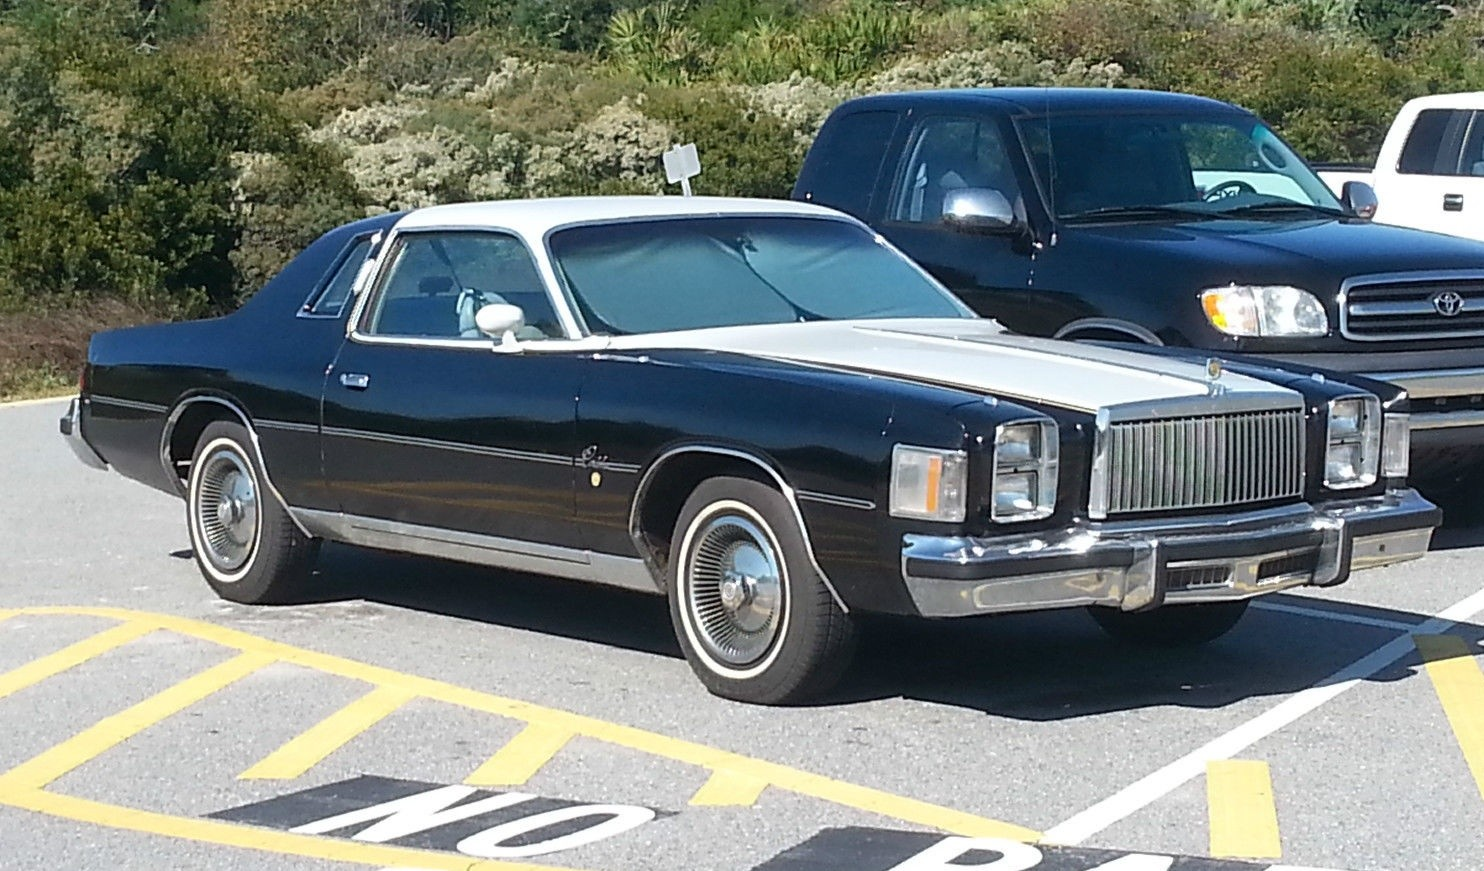 List Of Cars >> Soft Corinthian Leather! 1979 Chrysler Cordoba Special